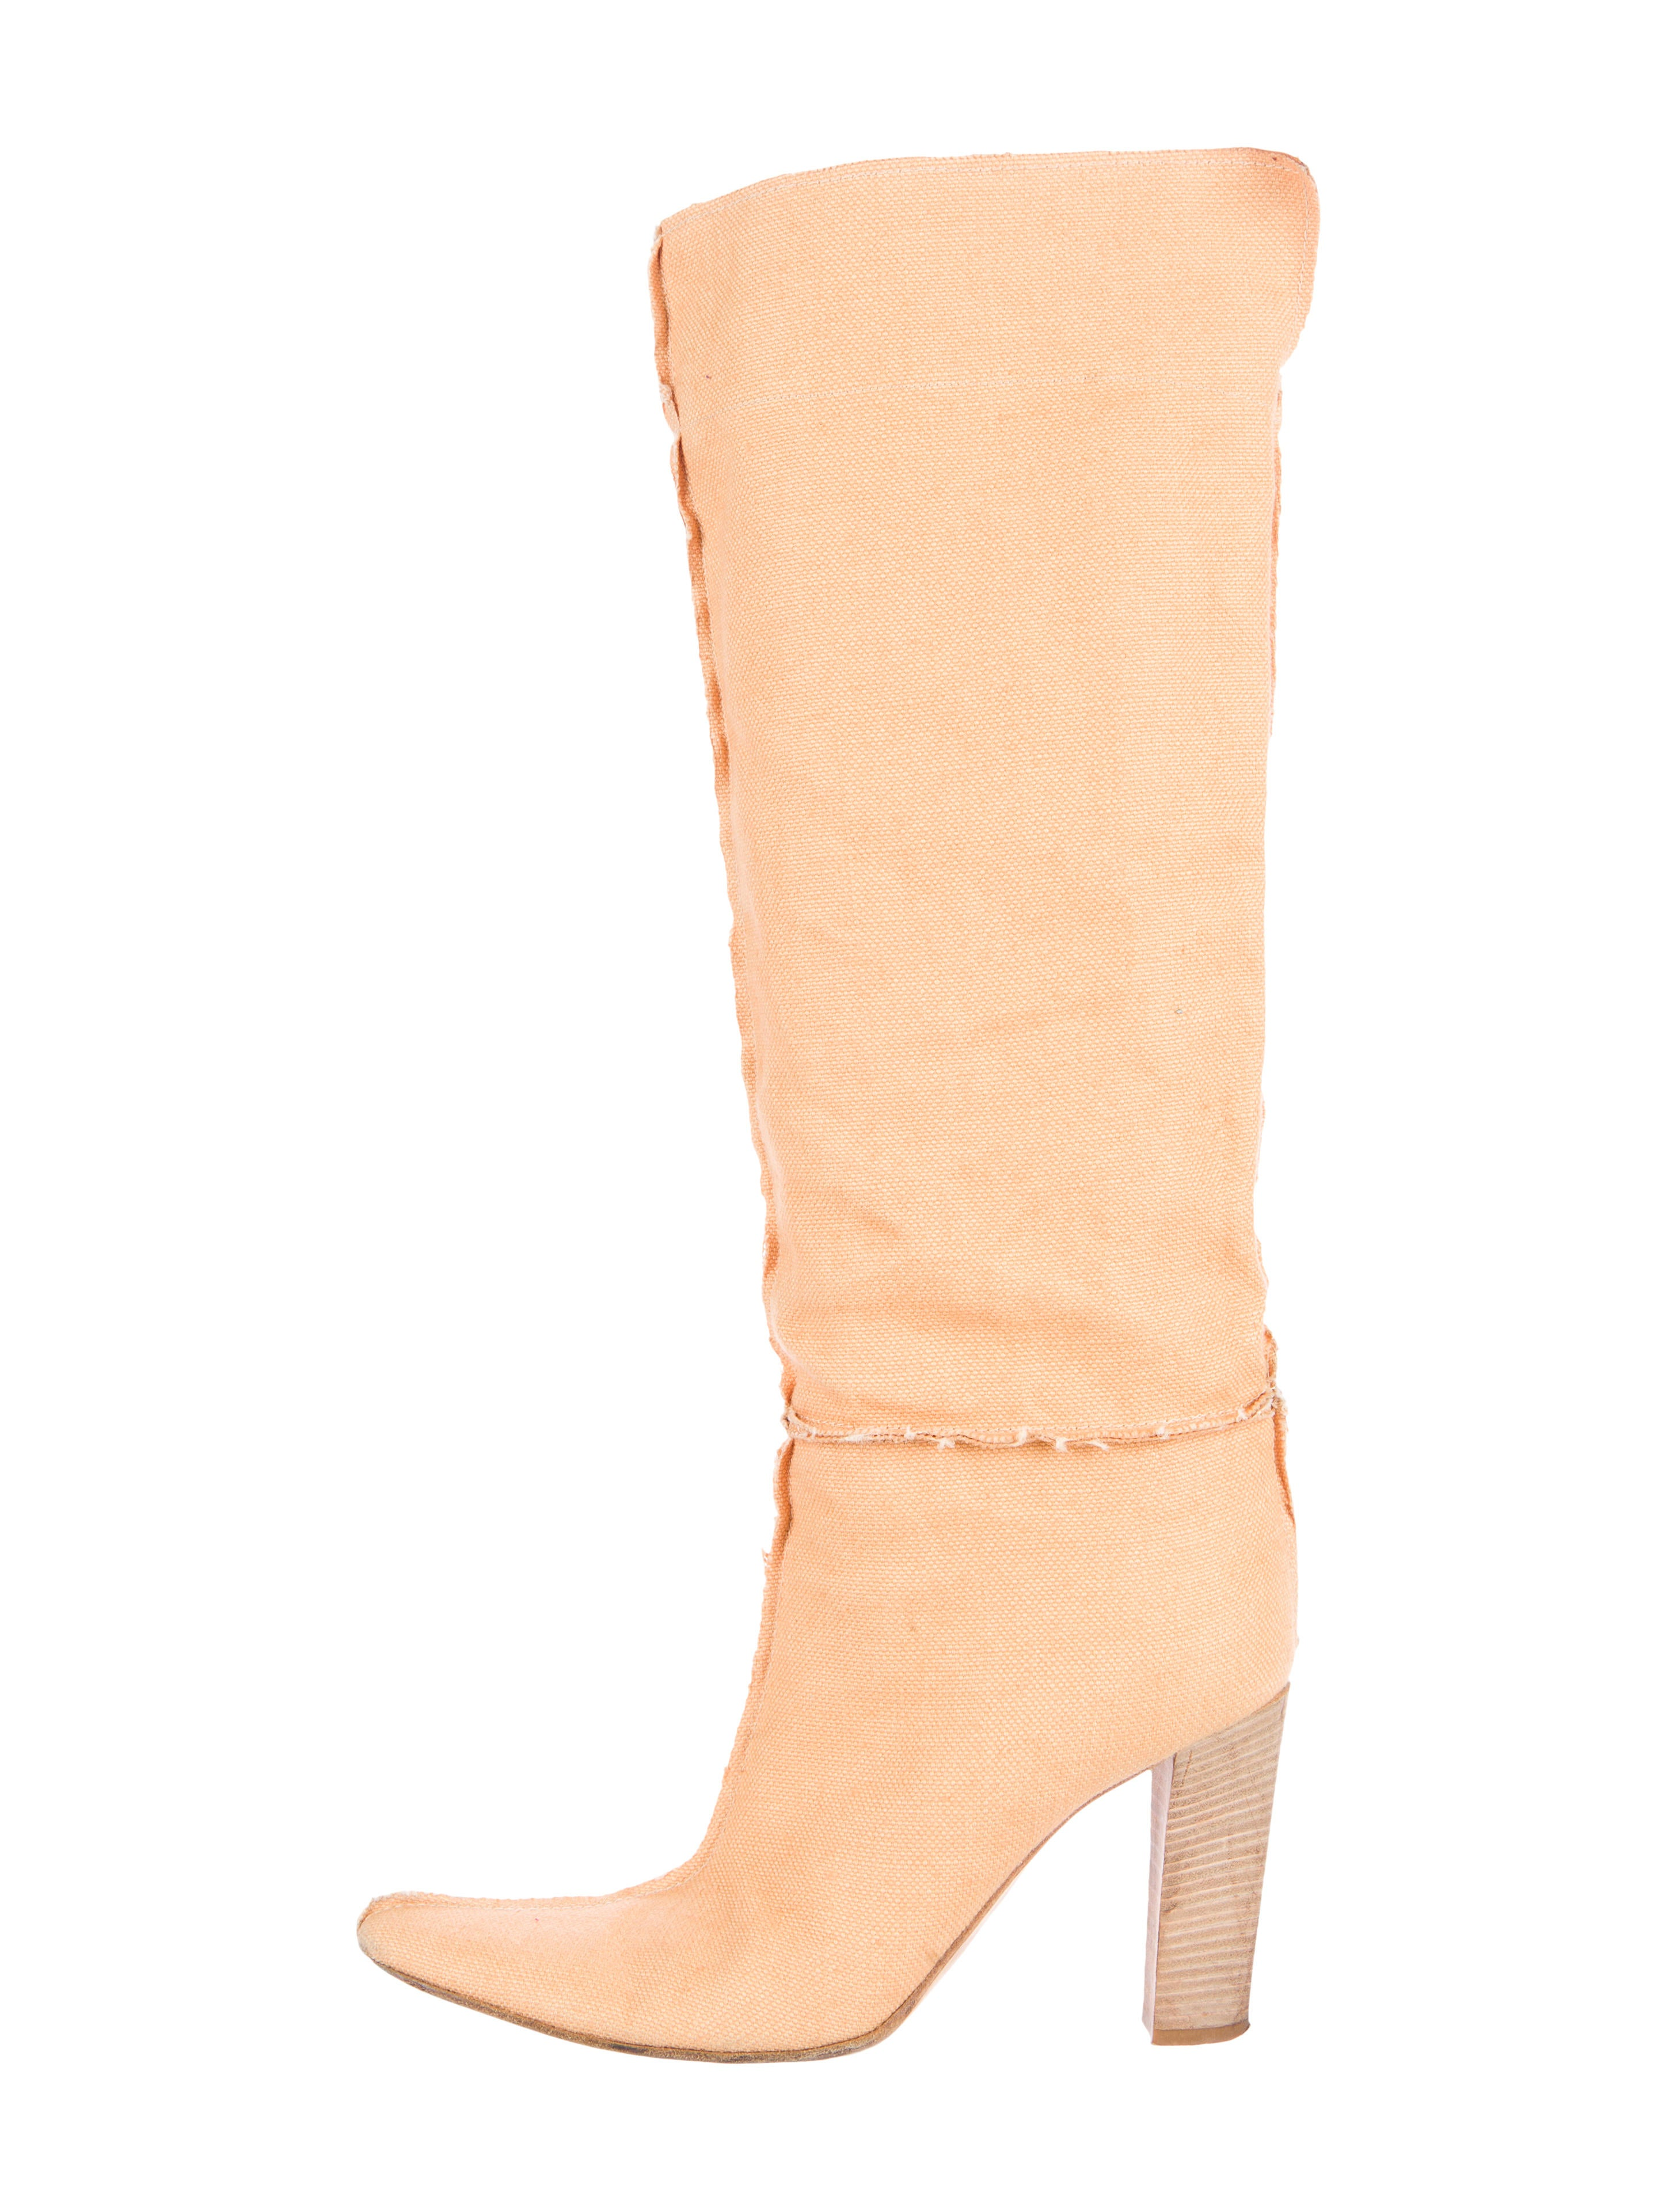 Bottega Veneta Suede Over-The-Knee Boots clearance recommend urJW5fEY0V